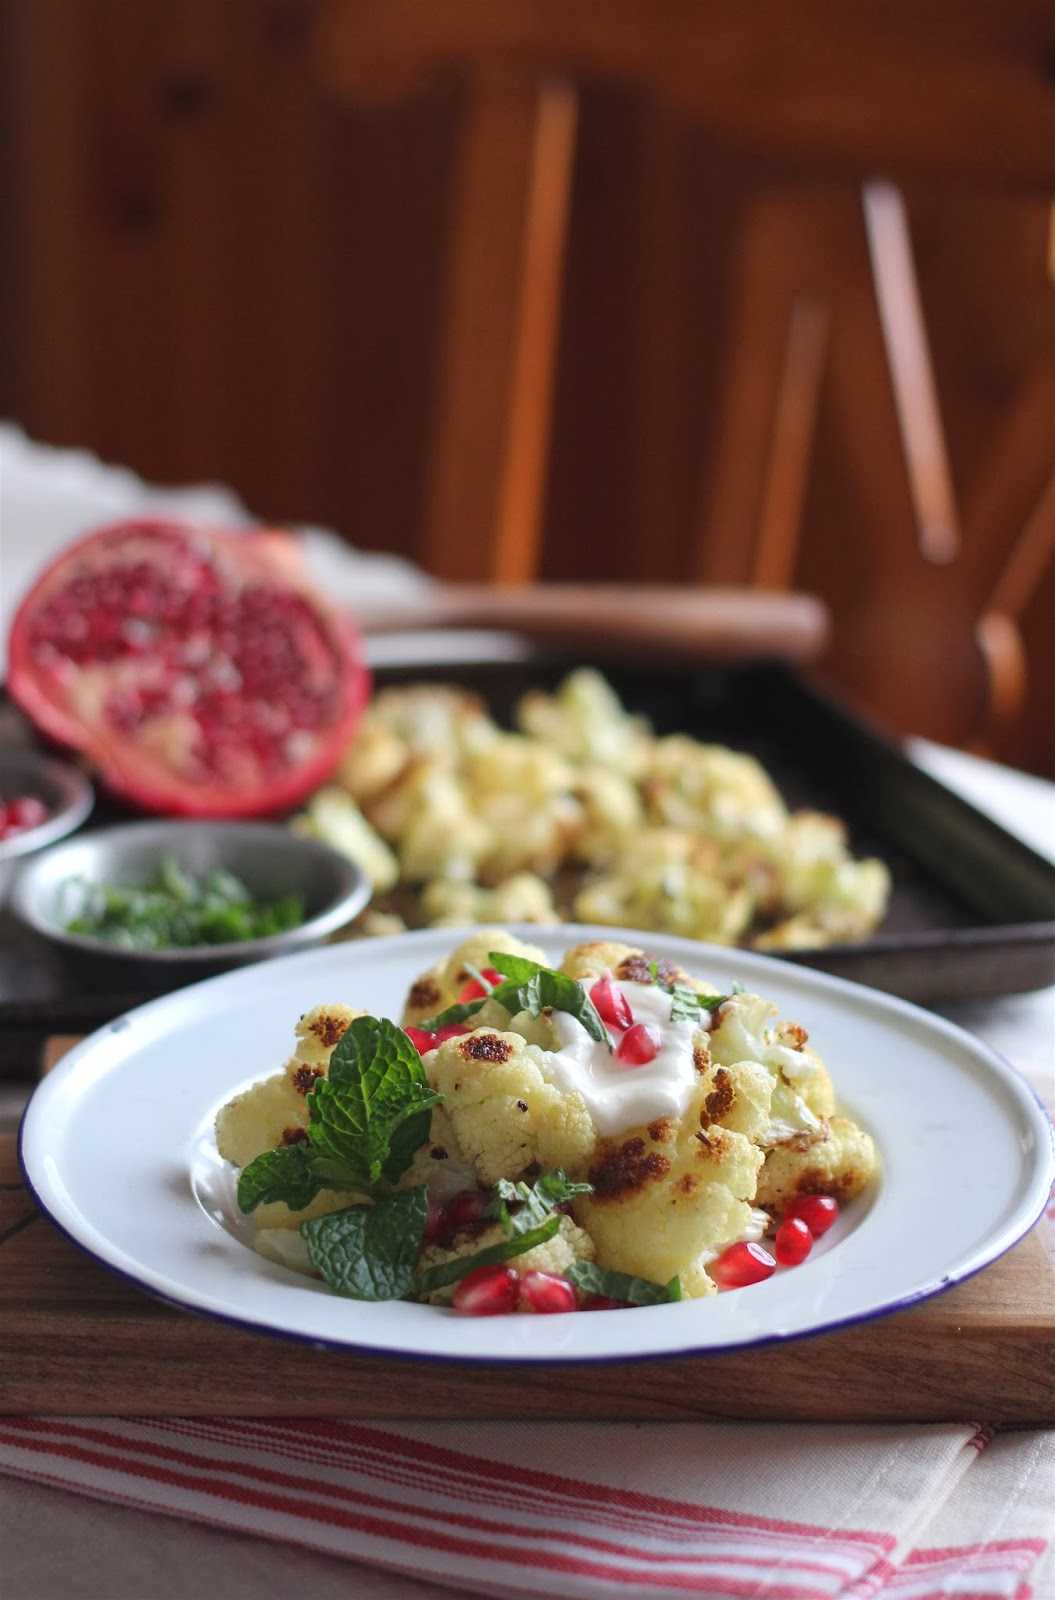 Arctic Garden Studio: Roasted Cauliflower with Cumin and Pomegranate